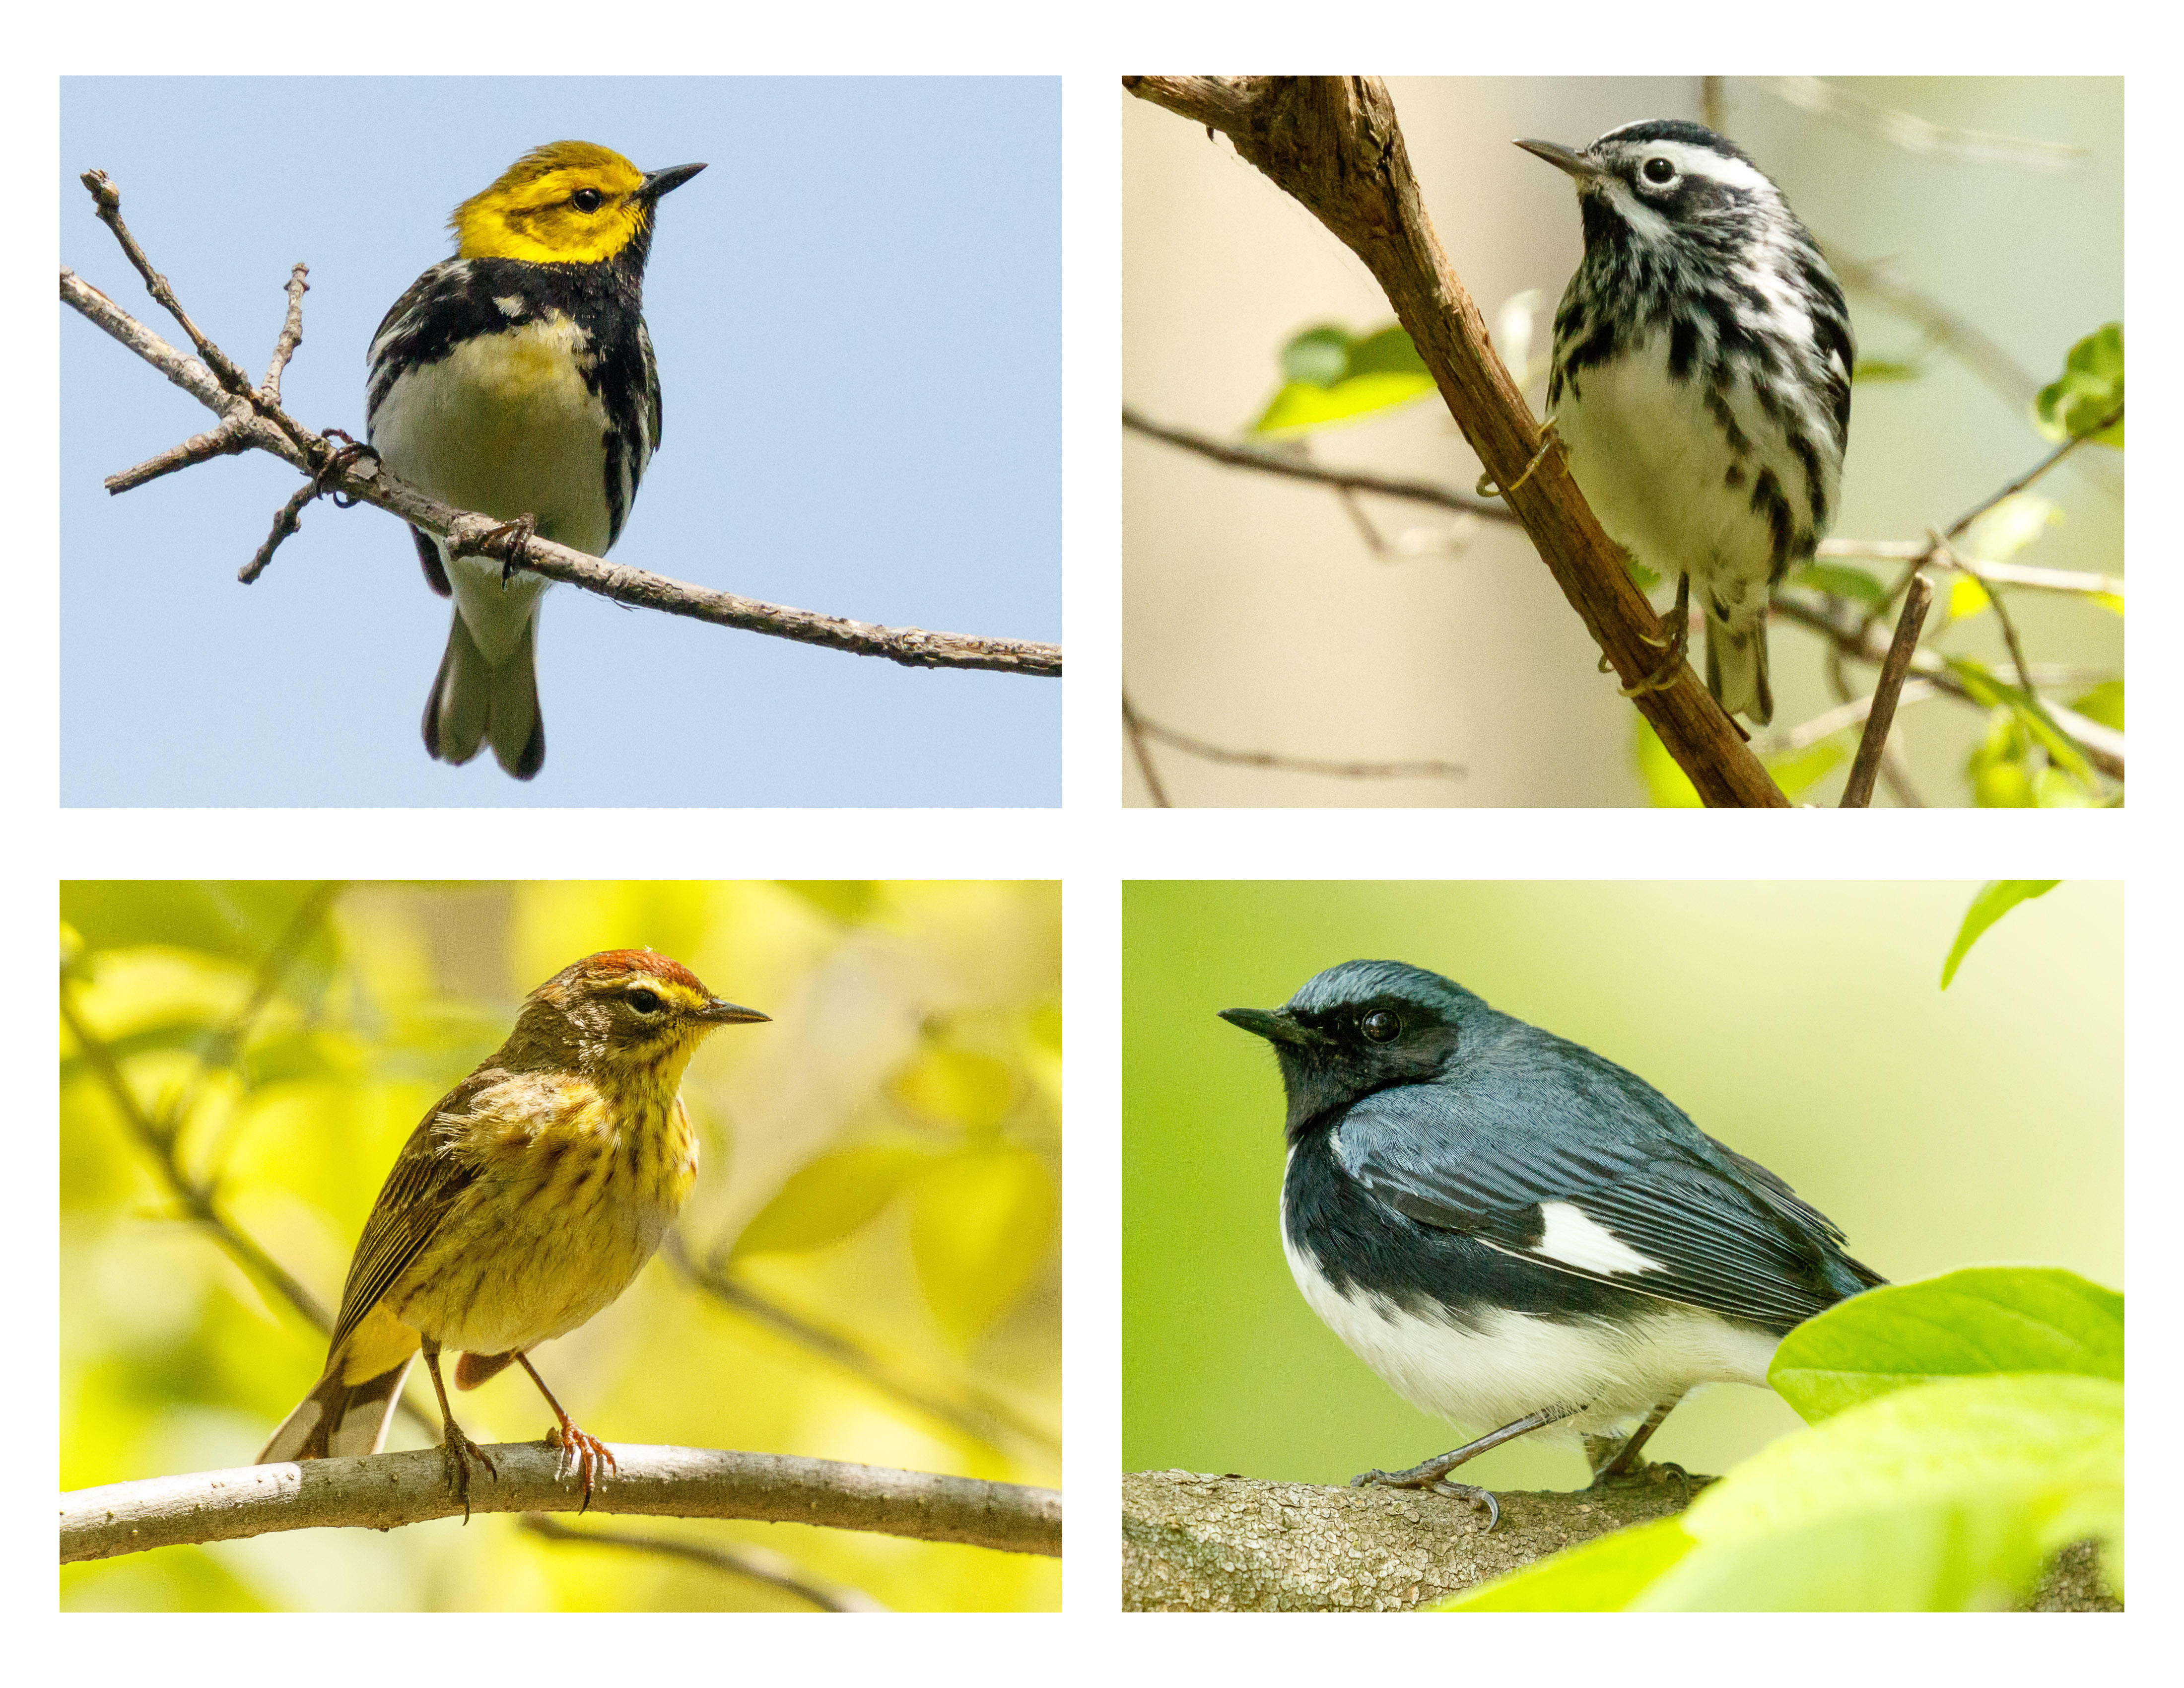 A quartet of Ohio warblers, clockwise from top left: black-throated green warbler, black and white warbler, palm warbler, and black-throated blue warbler.